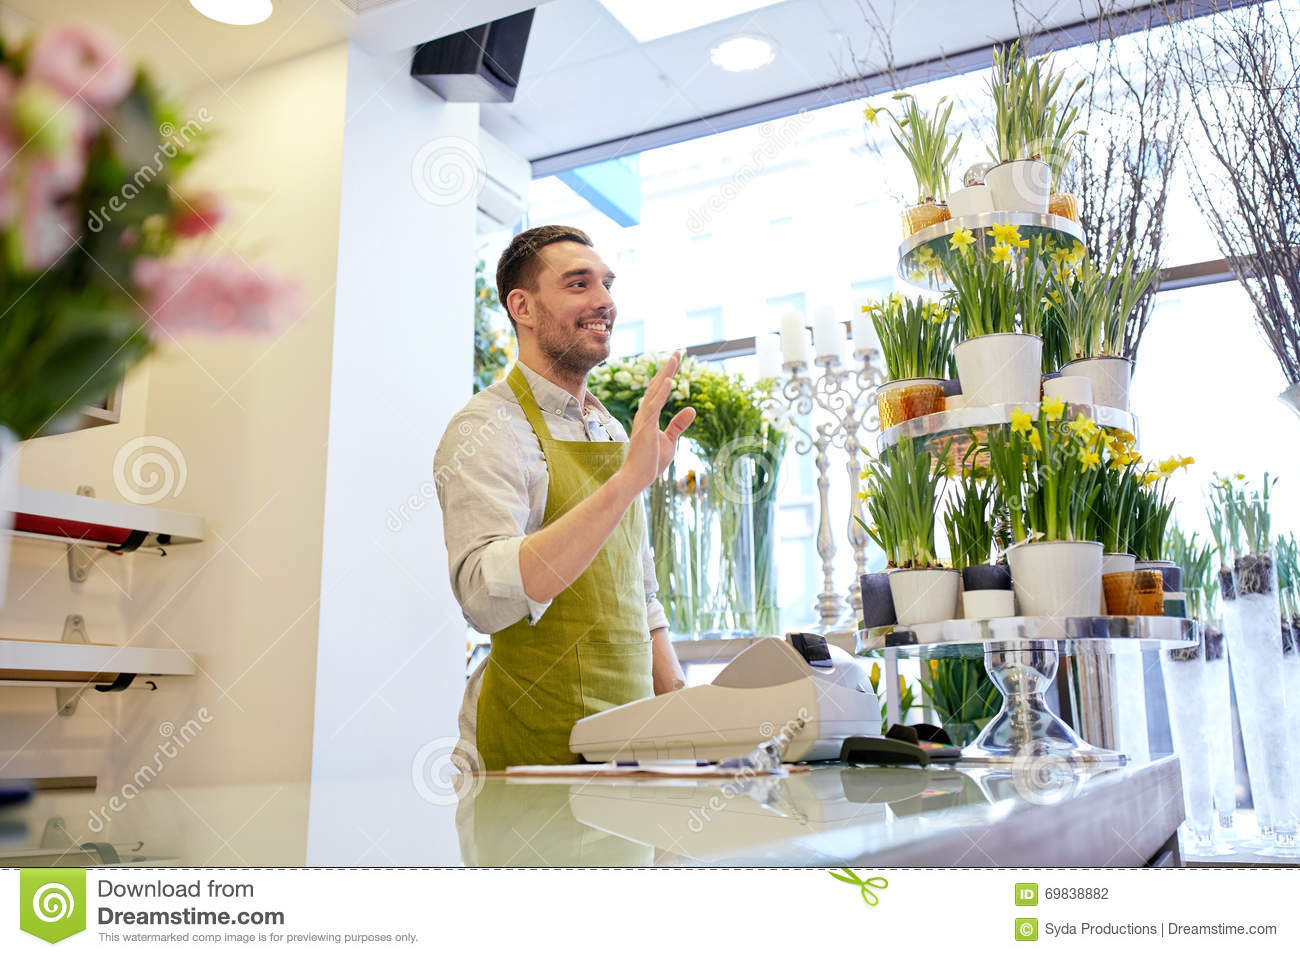 Writing a Business Plan for Your New Flower Shop